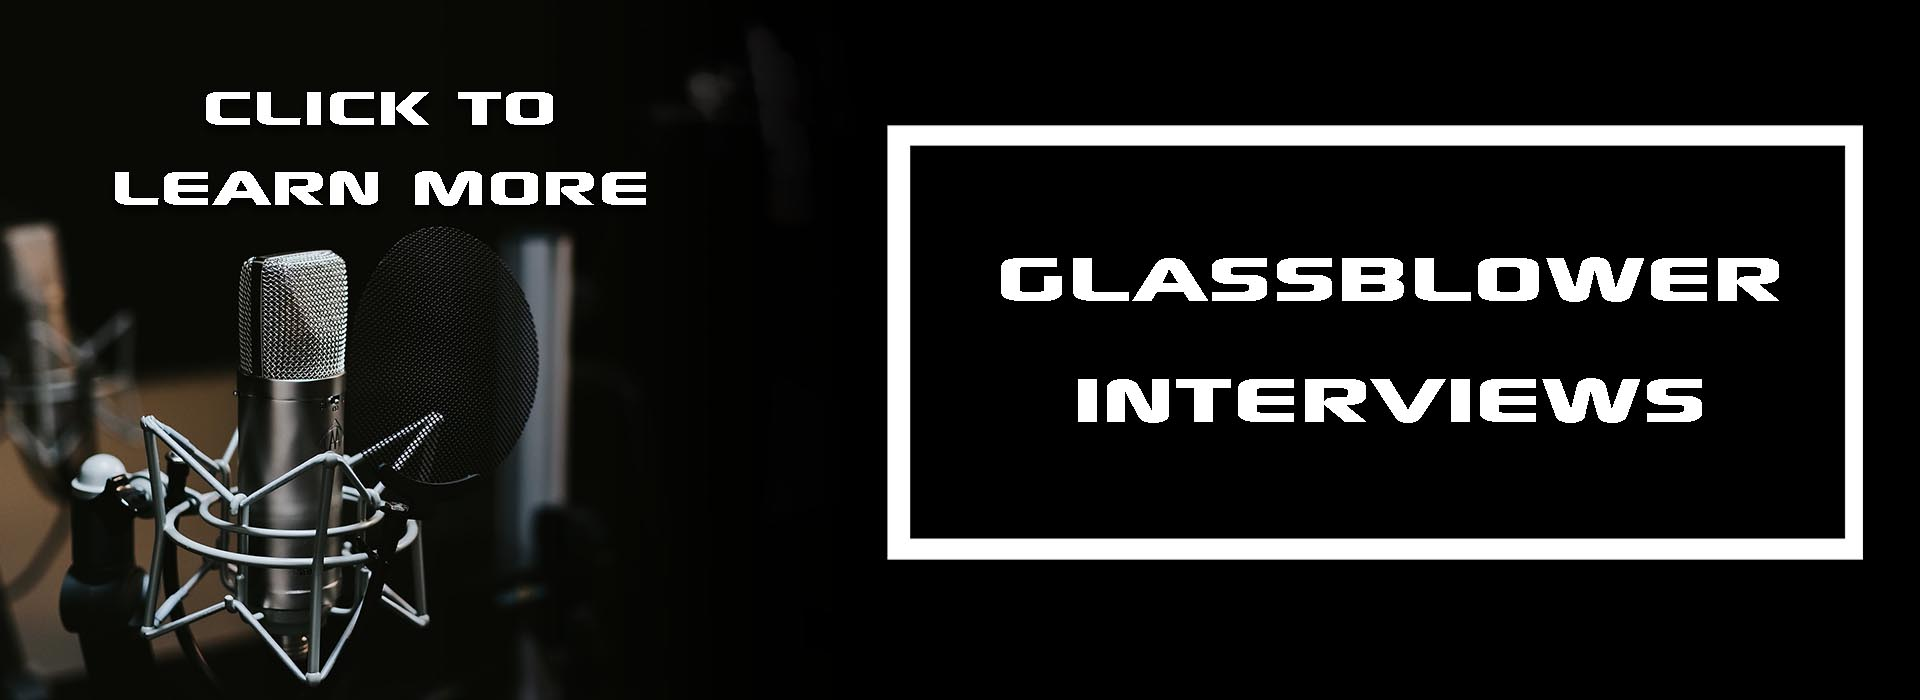 glassblower-interviews11.jpg